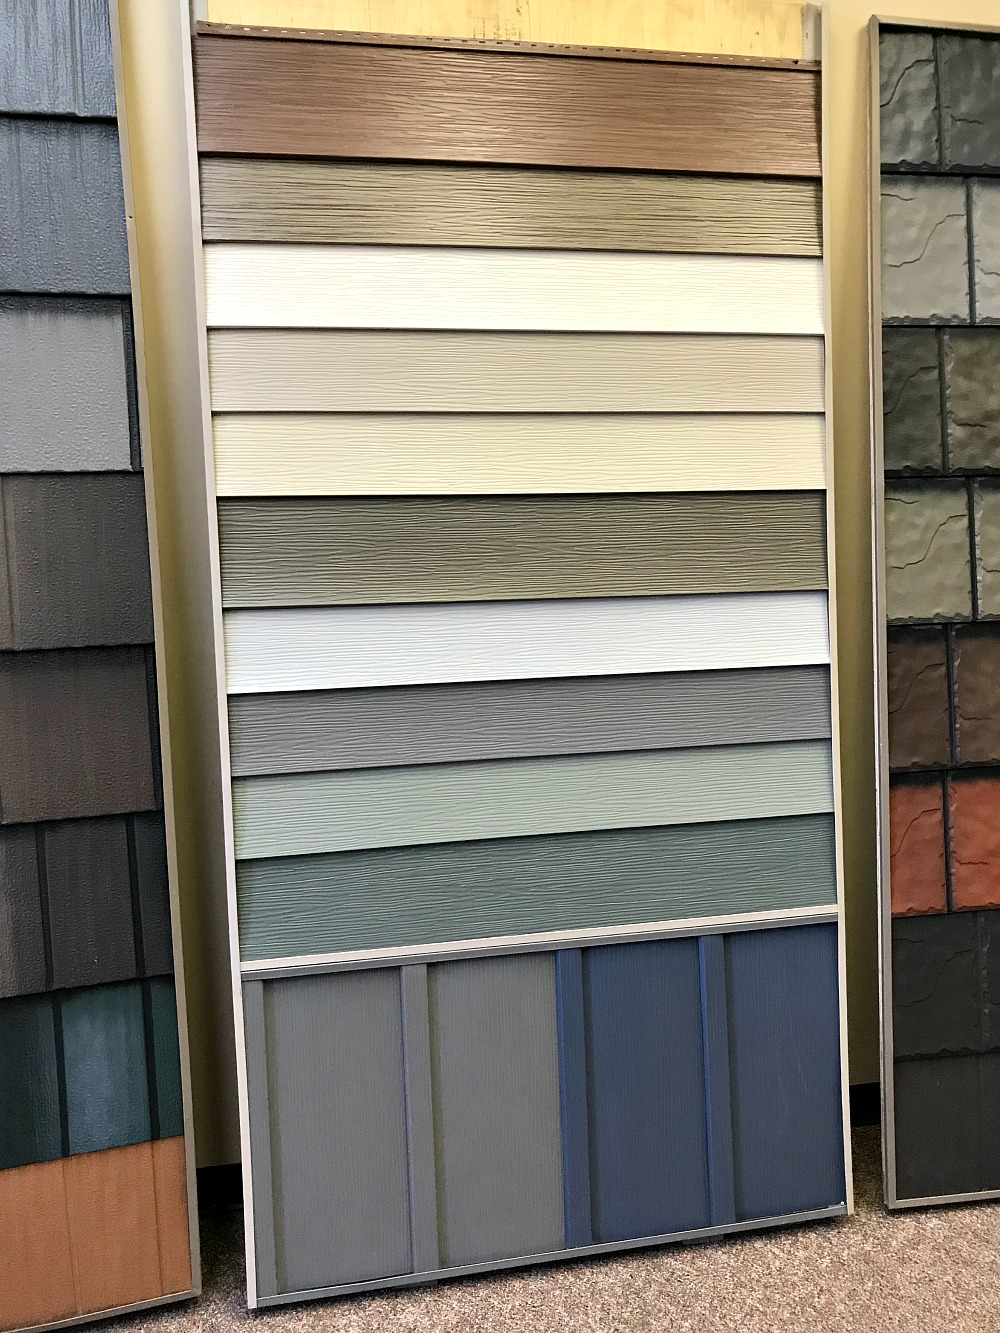 Steel Siding Recycled Materials : Siding material pros cons dans le lakehouse